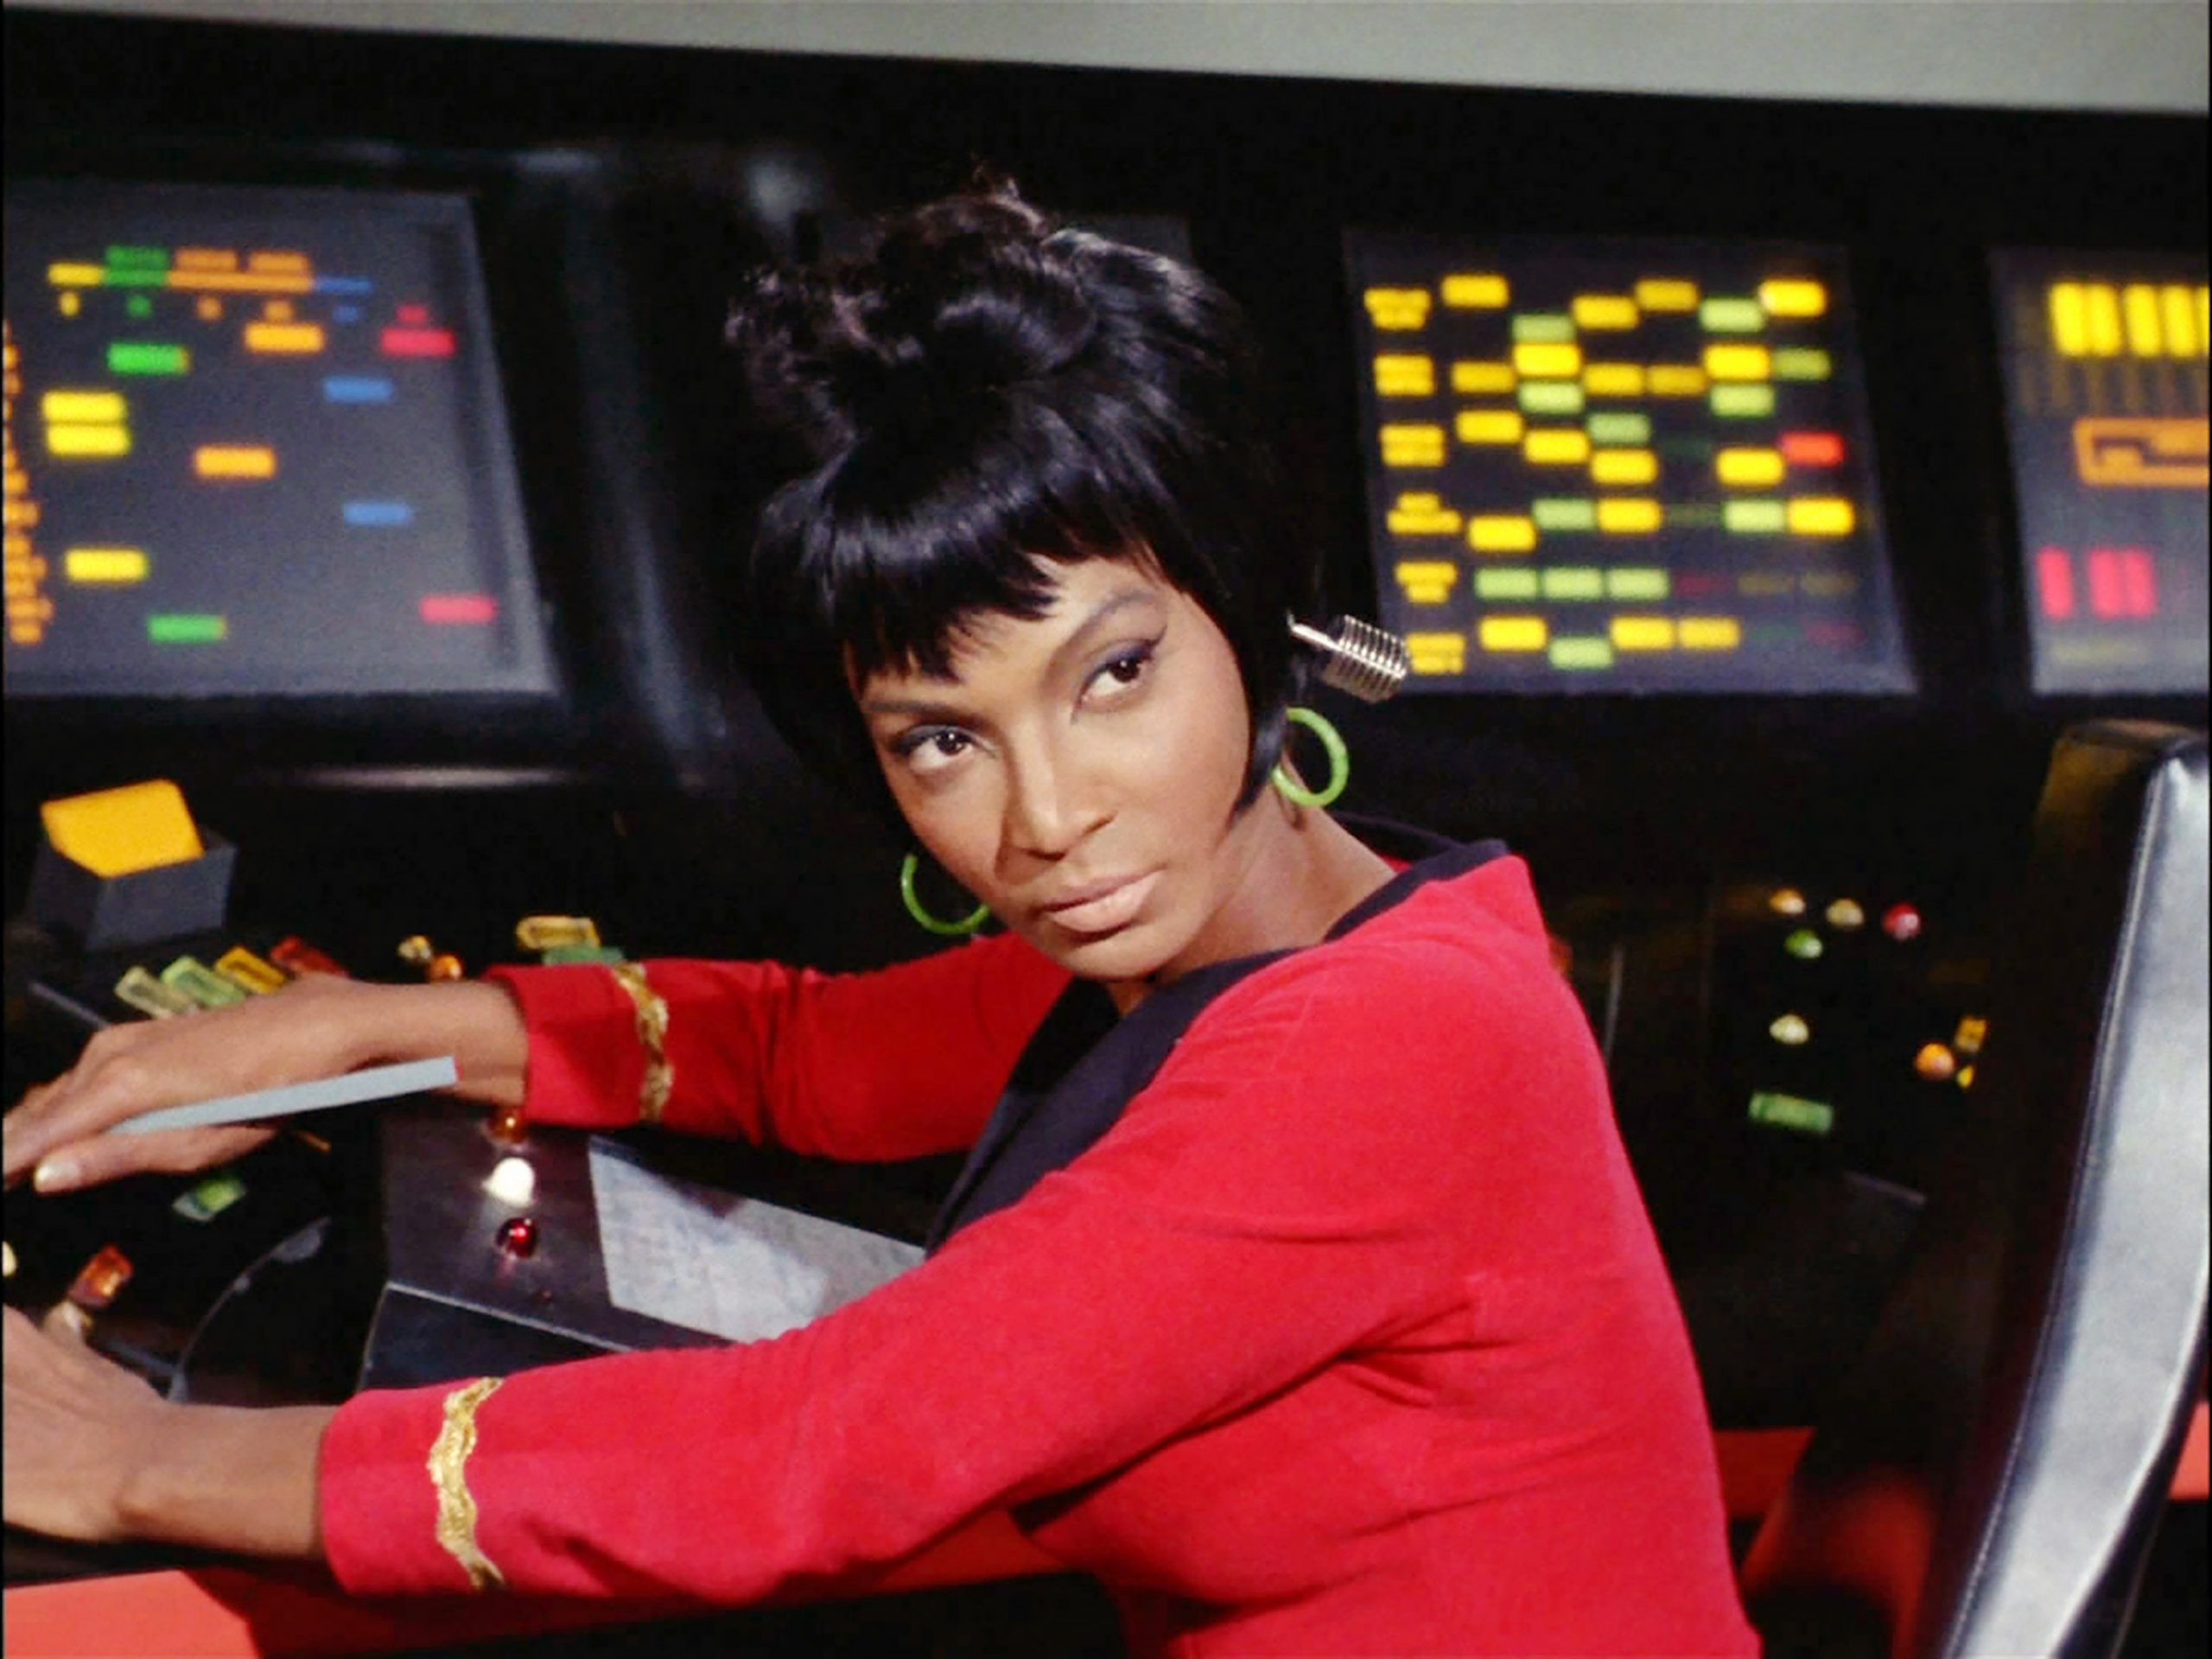 """LOS ANGELES - JANUARY 19: Nichelle Nichols as Lt. Nyota Uhura in the STAR TREK: THE ORIGINAL SERIES episode, """"Arena."""" Original air date January 19, 1967. Image is a screen grab. (Photo by CBS via Getty Images)"""